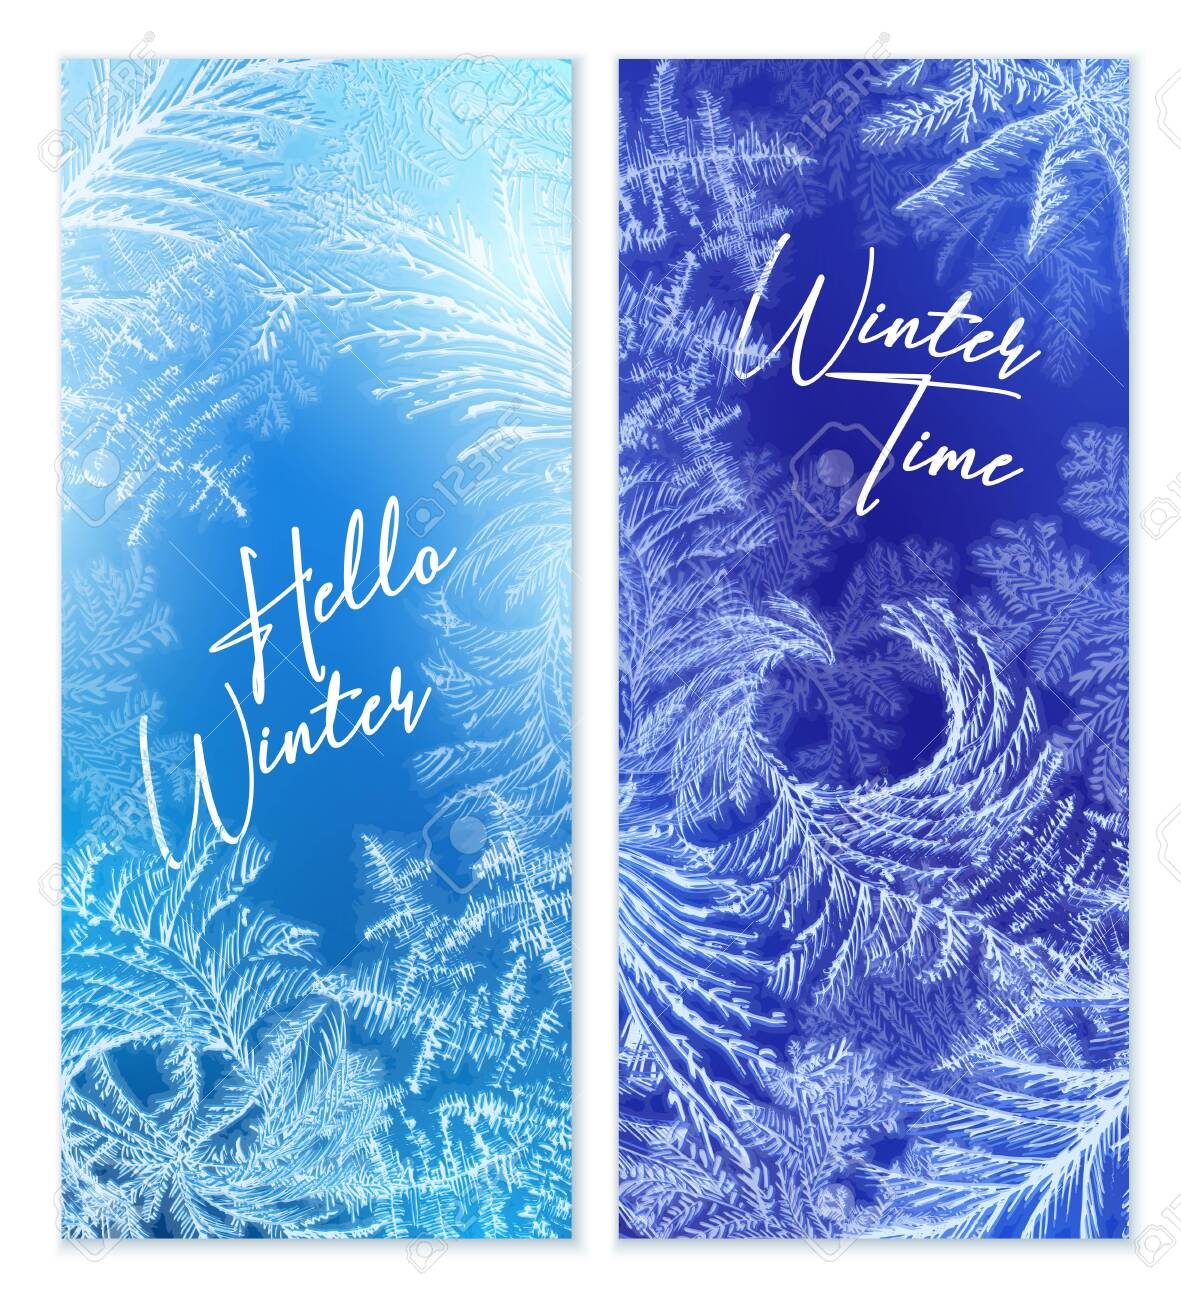 Frost window vertical banners set with winter symbols realistic isolated vector illustration - 135919267